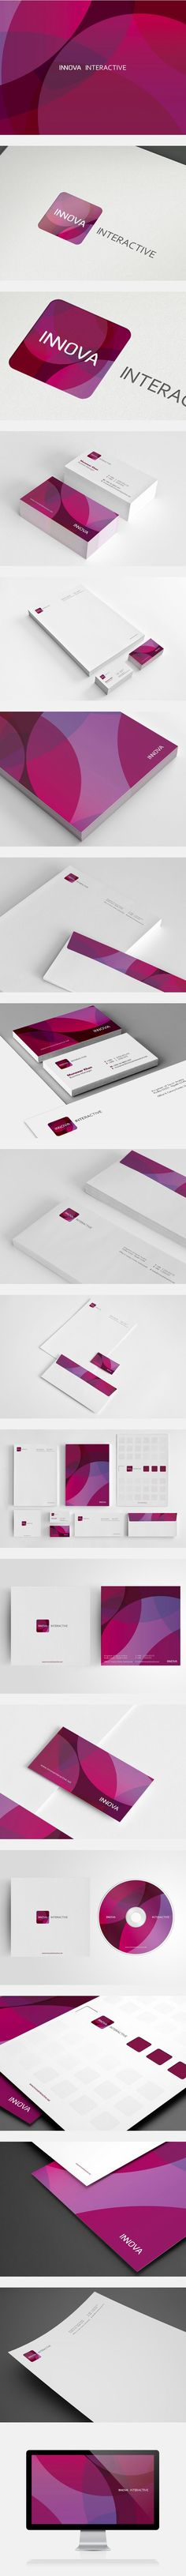 logo design - branding - Innova Interactive Identity - cool presentation #ccscolour. If you're a user experience professional, listen to The UX Blog Podcast on iTunes.